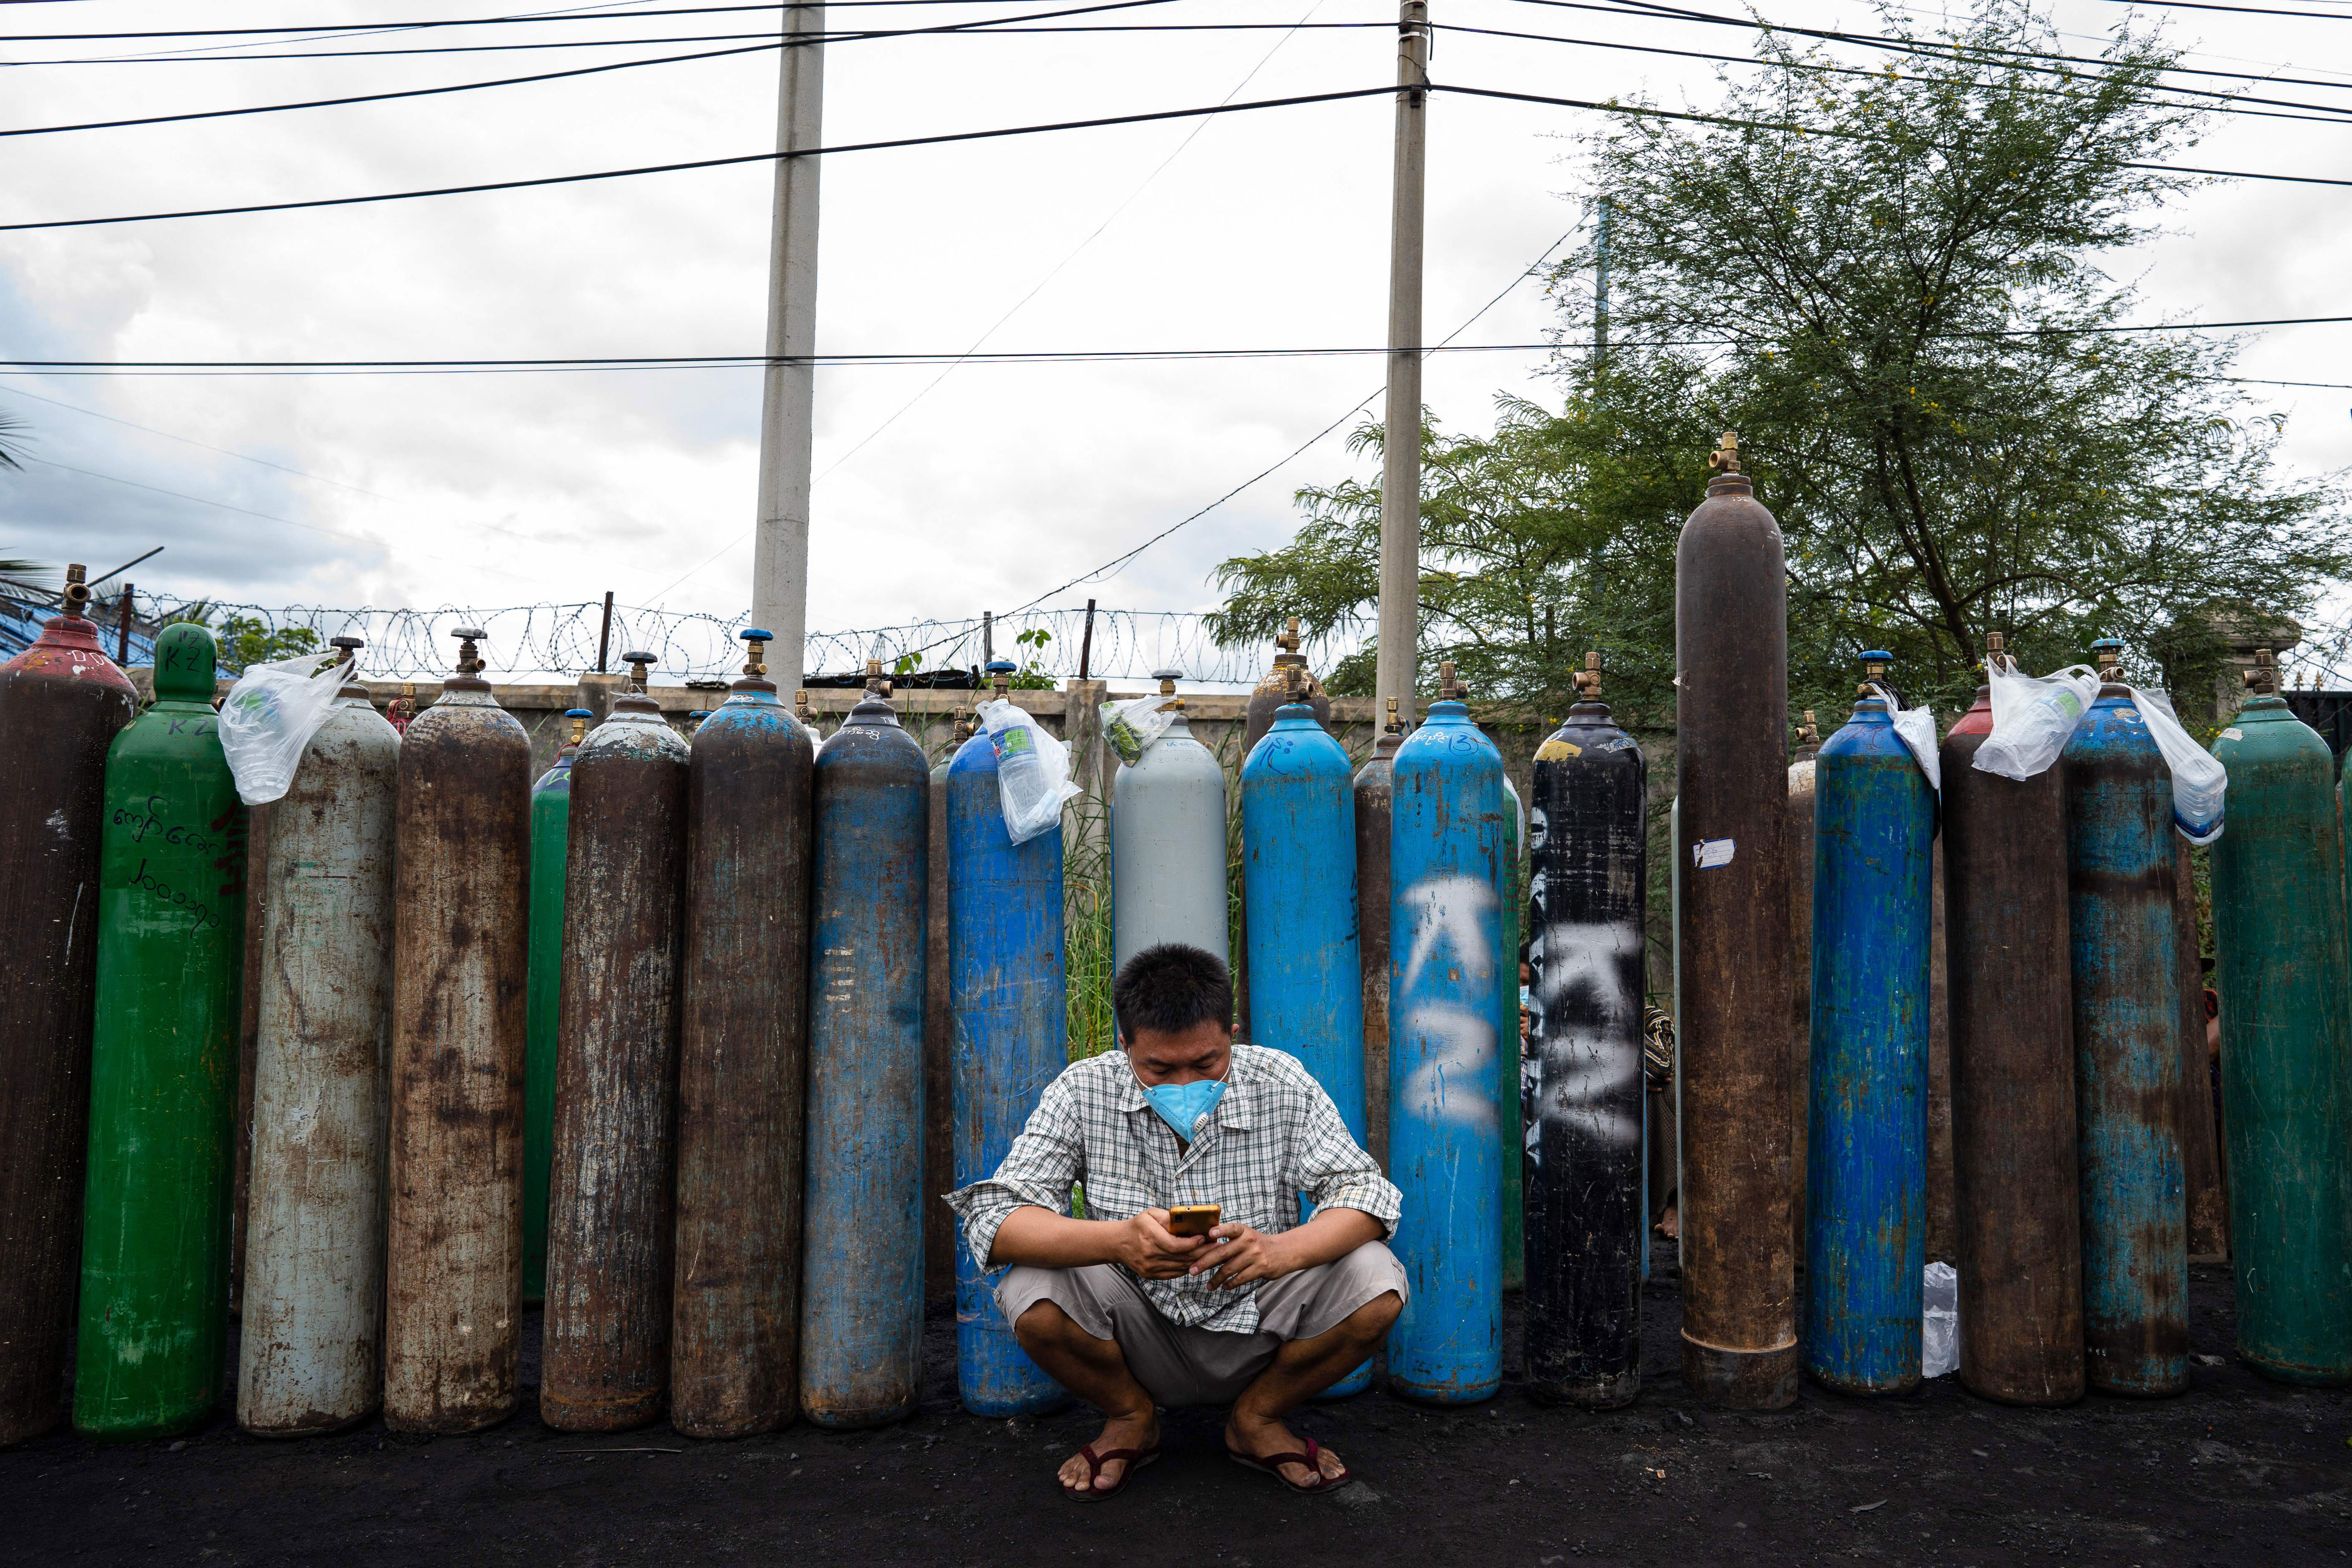 A person sits by empty oxygen canisters, which people are waiting to fill up, outside a factory in Mandalay, Myanmar, on July 13, 2021.